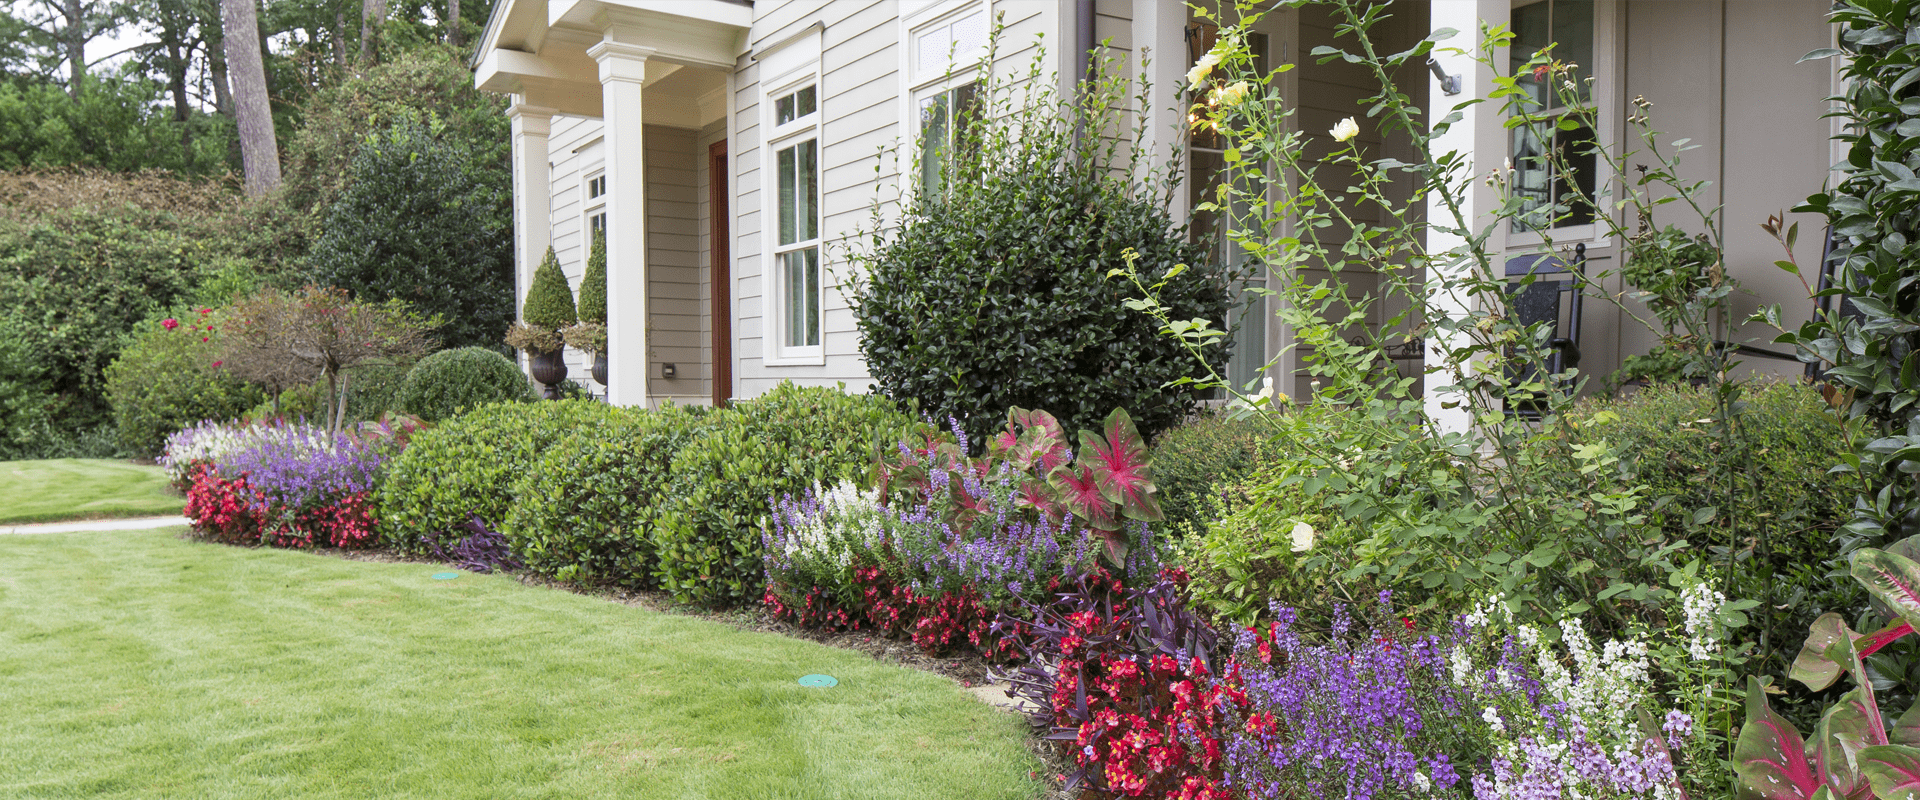 beautiful landscaping in front of a residential home